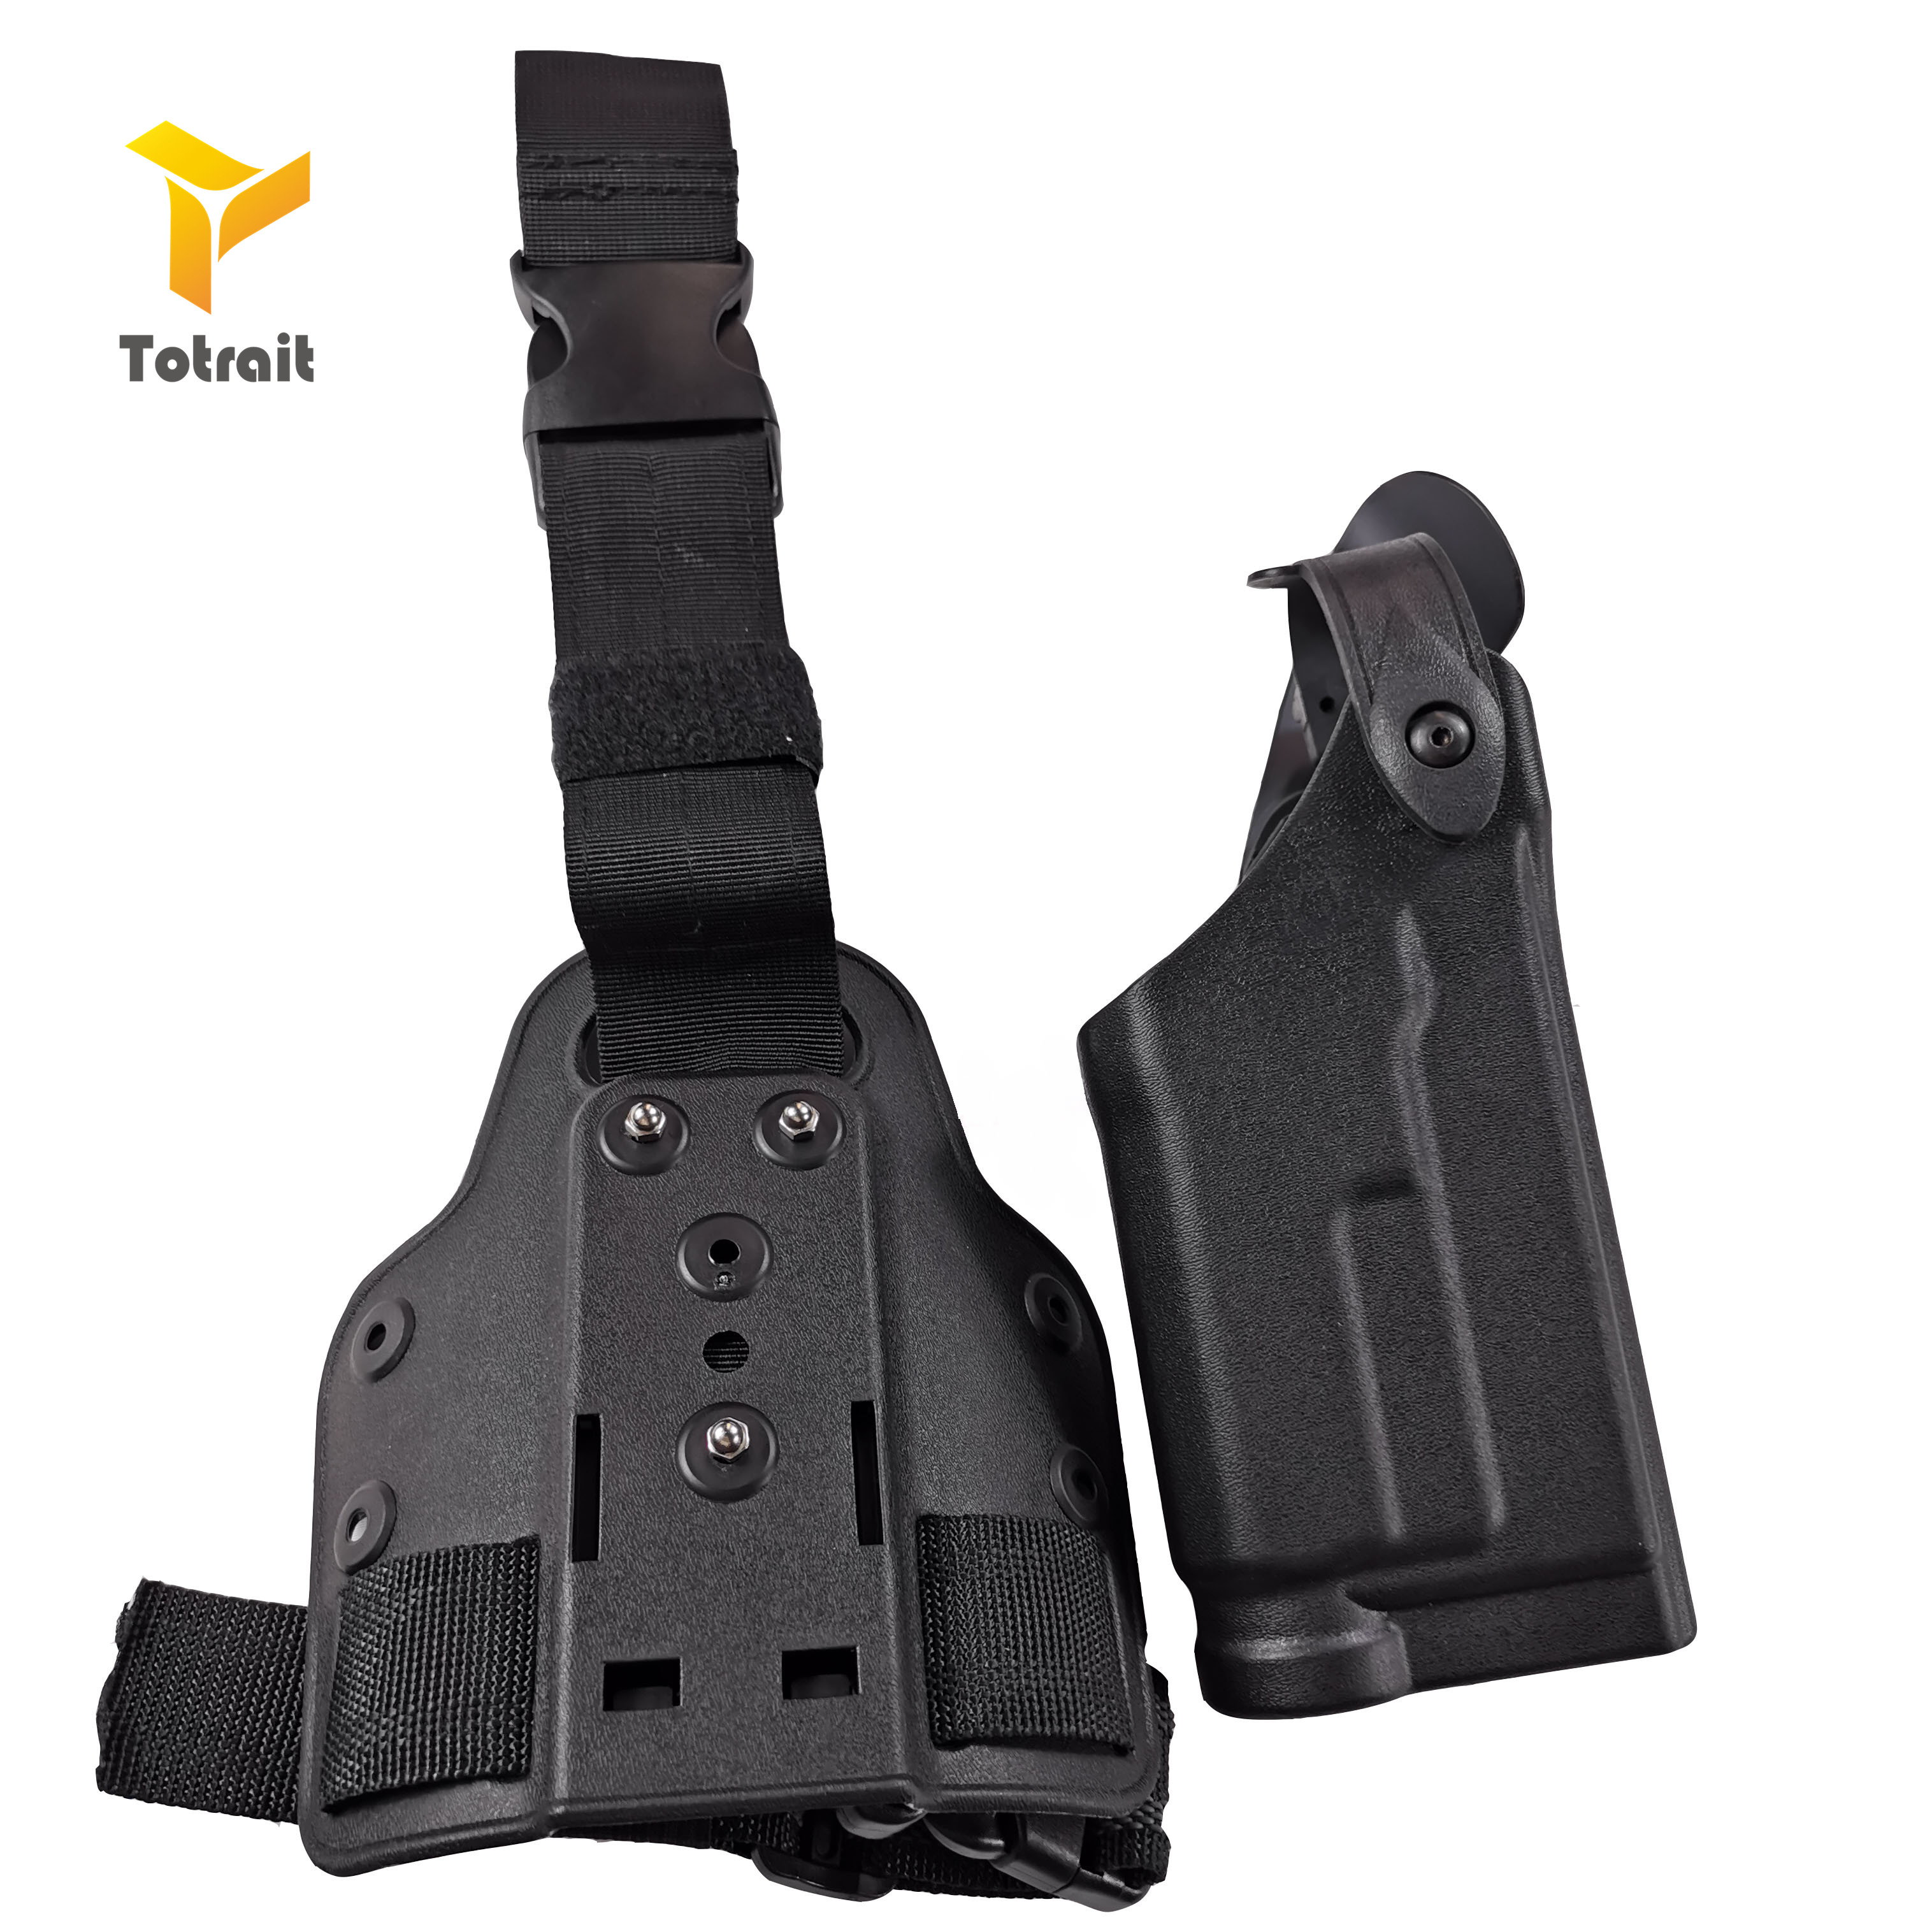 Quick Drop Tactical HK USP Compact Pistol Gun Holster Military Army Gun Leg Holster Airsoft Hunting Shooting Gun Carry Case image